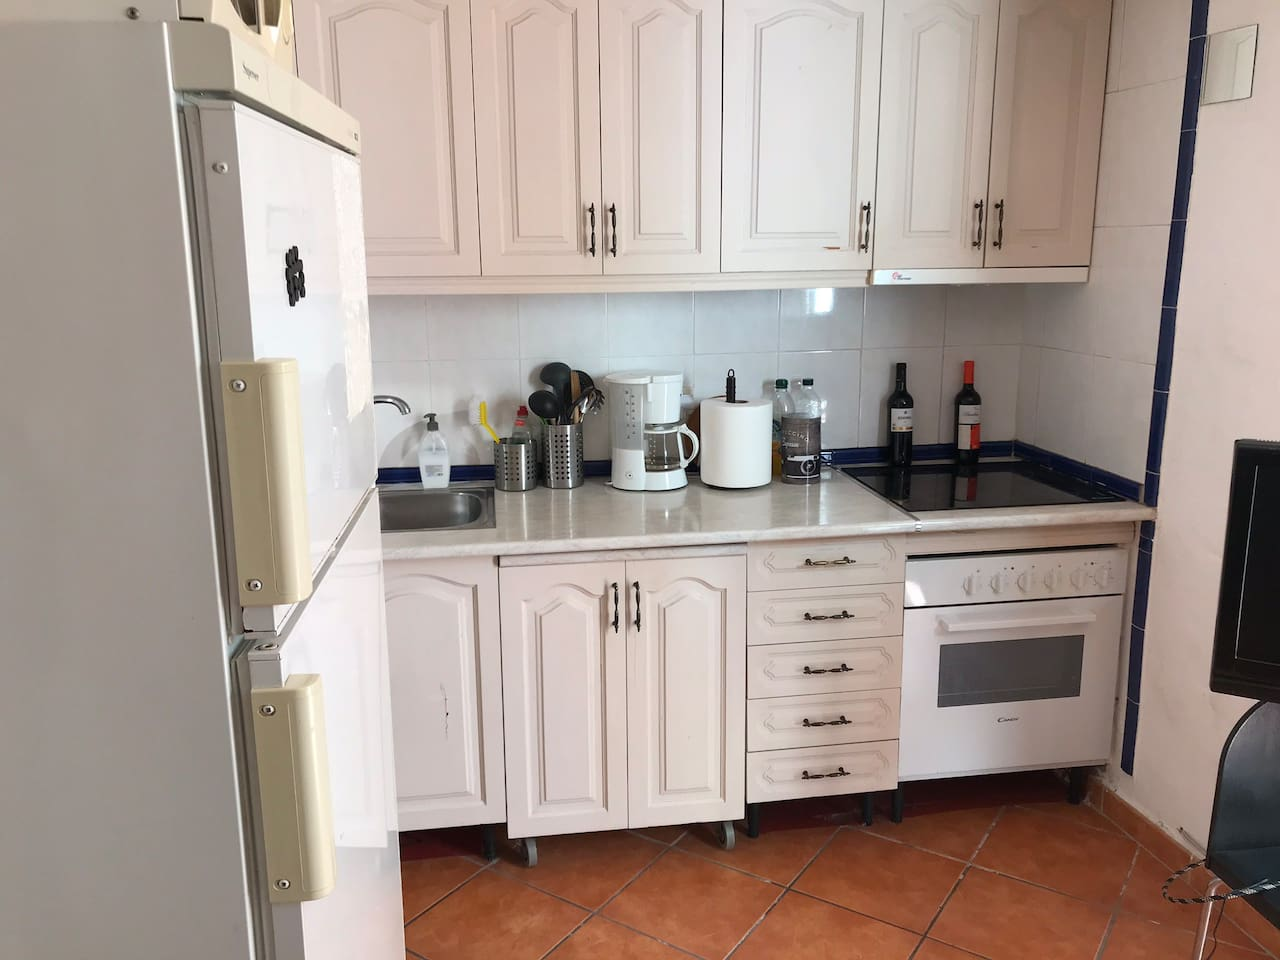 Well equipped kitchen with hob, oven/grill, microwave, fridge-freezer, electric kettle, toaster and coffee maker.